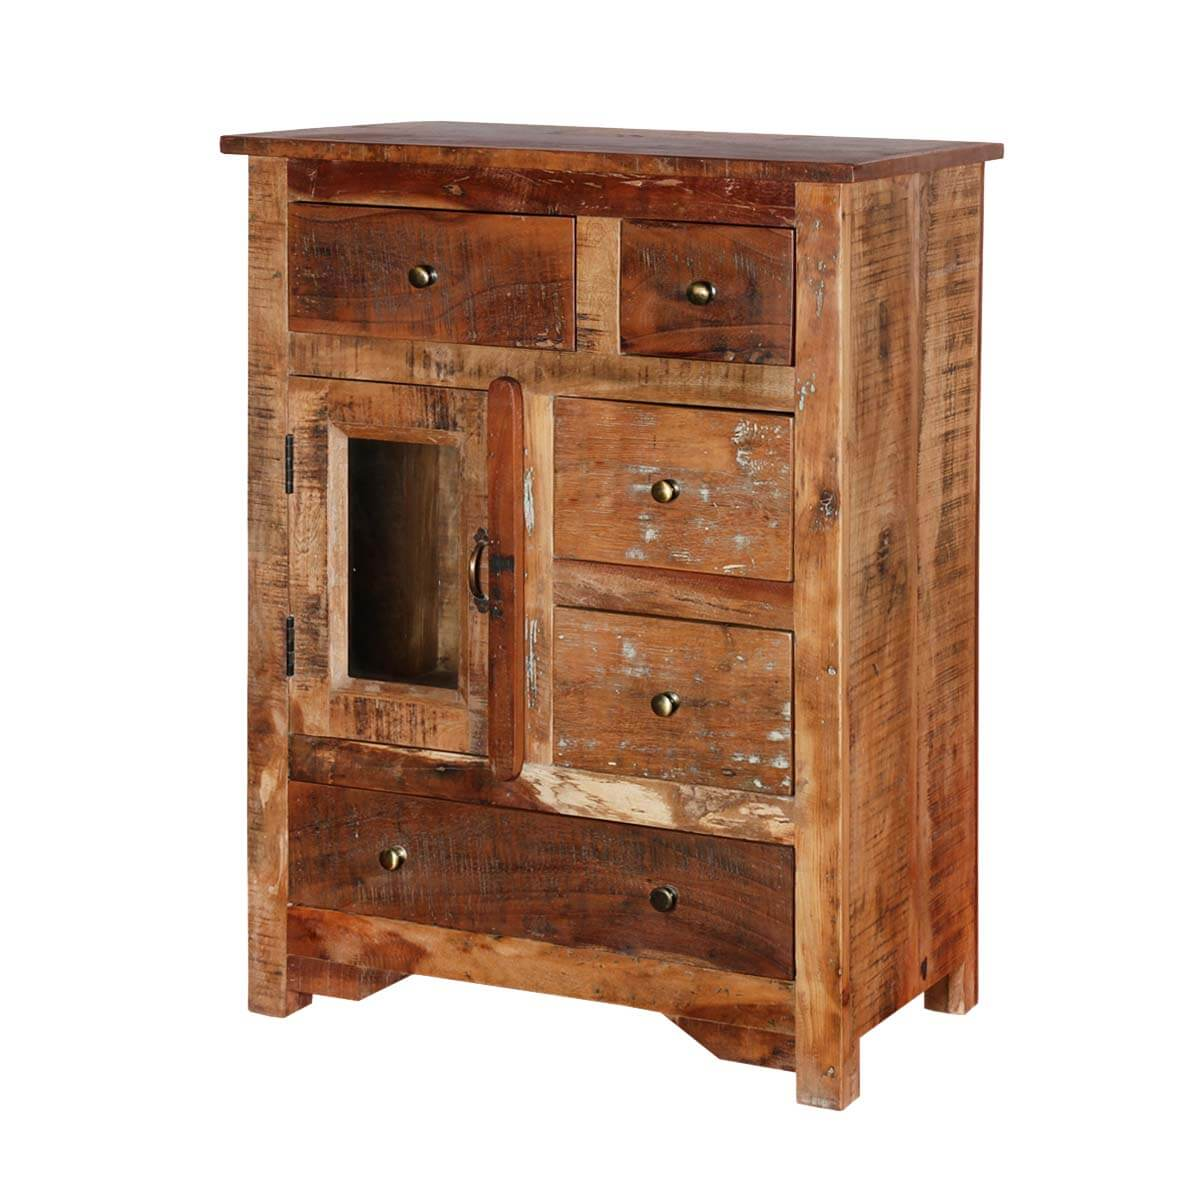 sc 1 st  Sierra Living Concepts & Richmond Rustic Reclaimed Wood 5 Drawers Accent Storage Cabinet